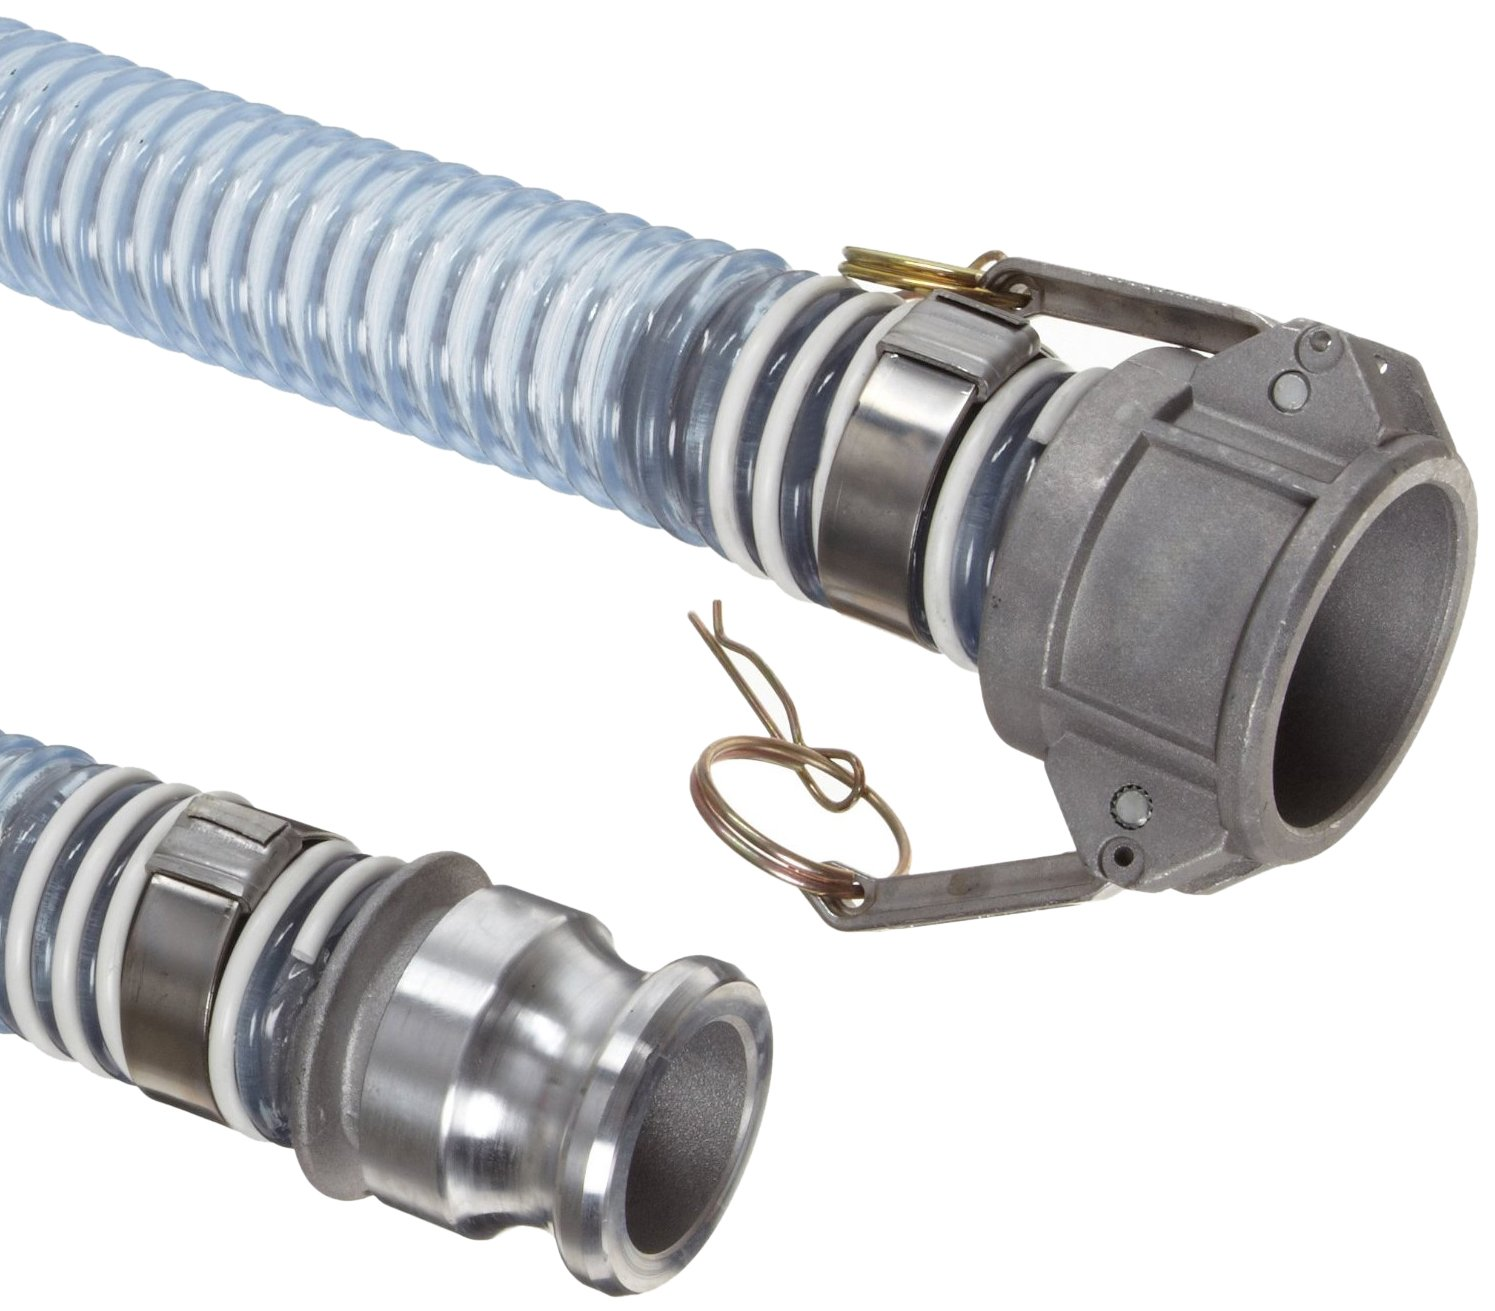 Unisource 1760 clear PVC Food Grade Hose Assembly, 2-1/2'' Aluminum Cam And Groove Connection, 29.8'' Hg Vacuum Rating 40 PSI Maximum Pressure, 15' Length, 2-1/2'' ID